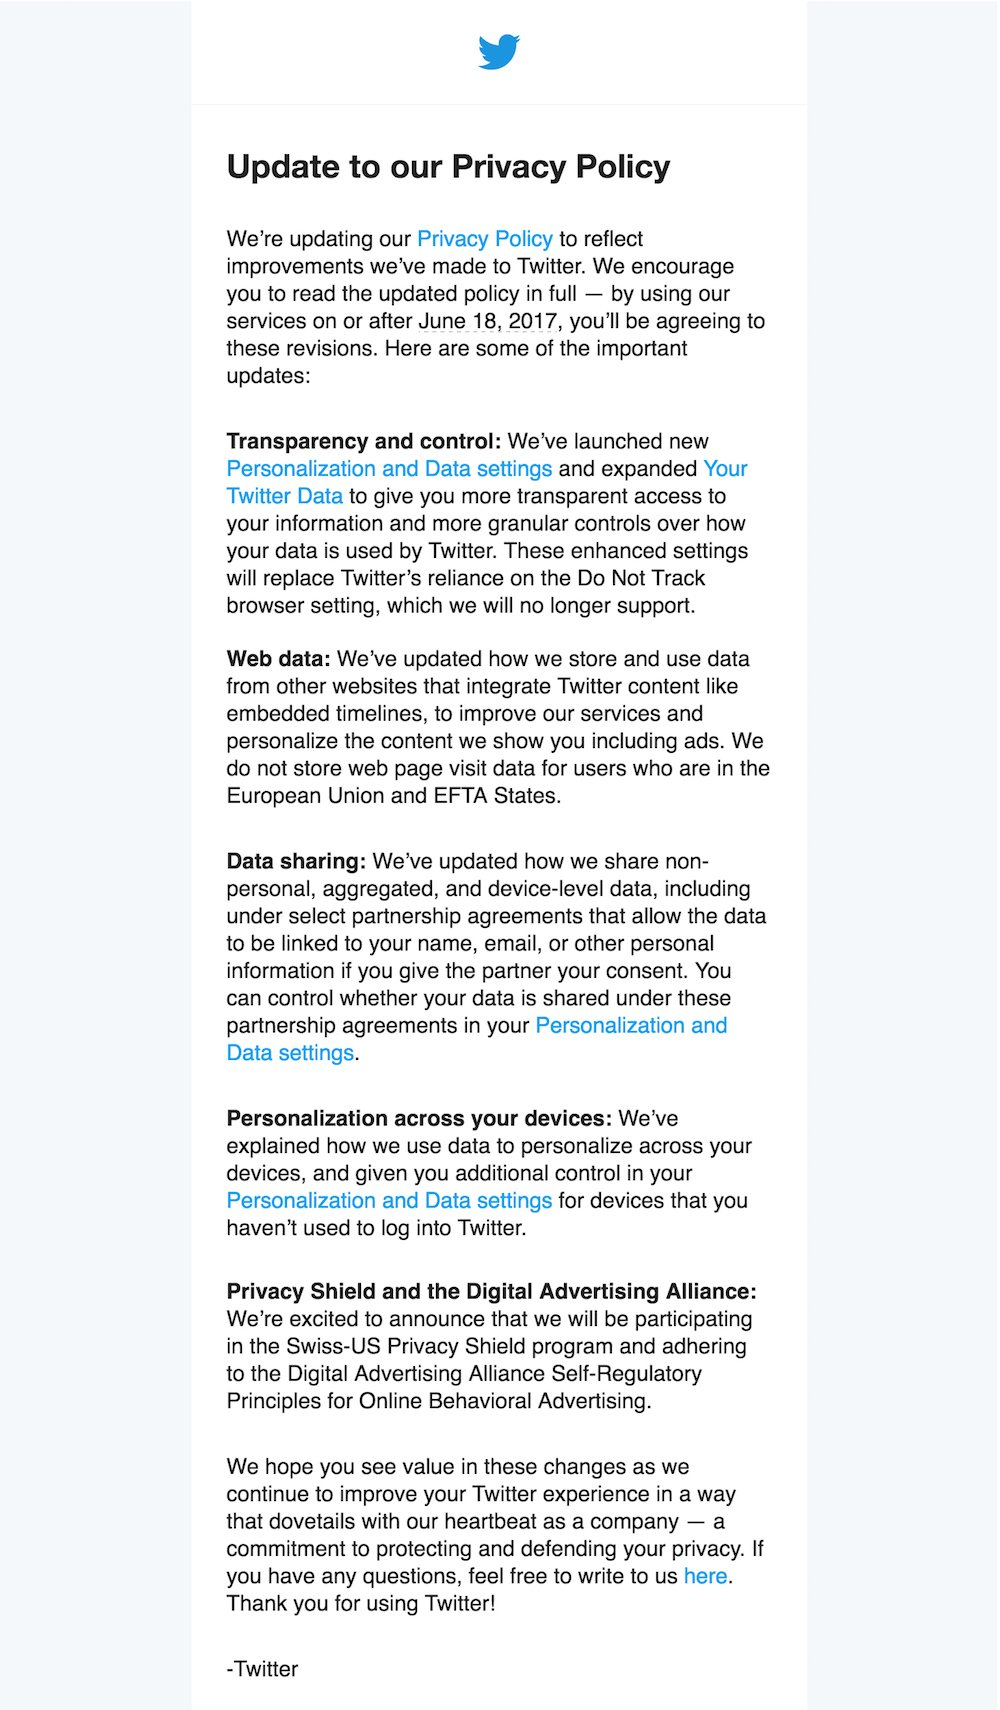 Twitter updated Privacy Policy in June 2017: Email notification to users